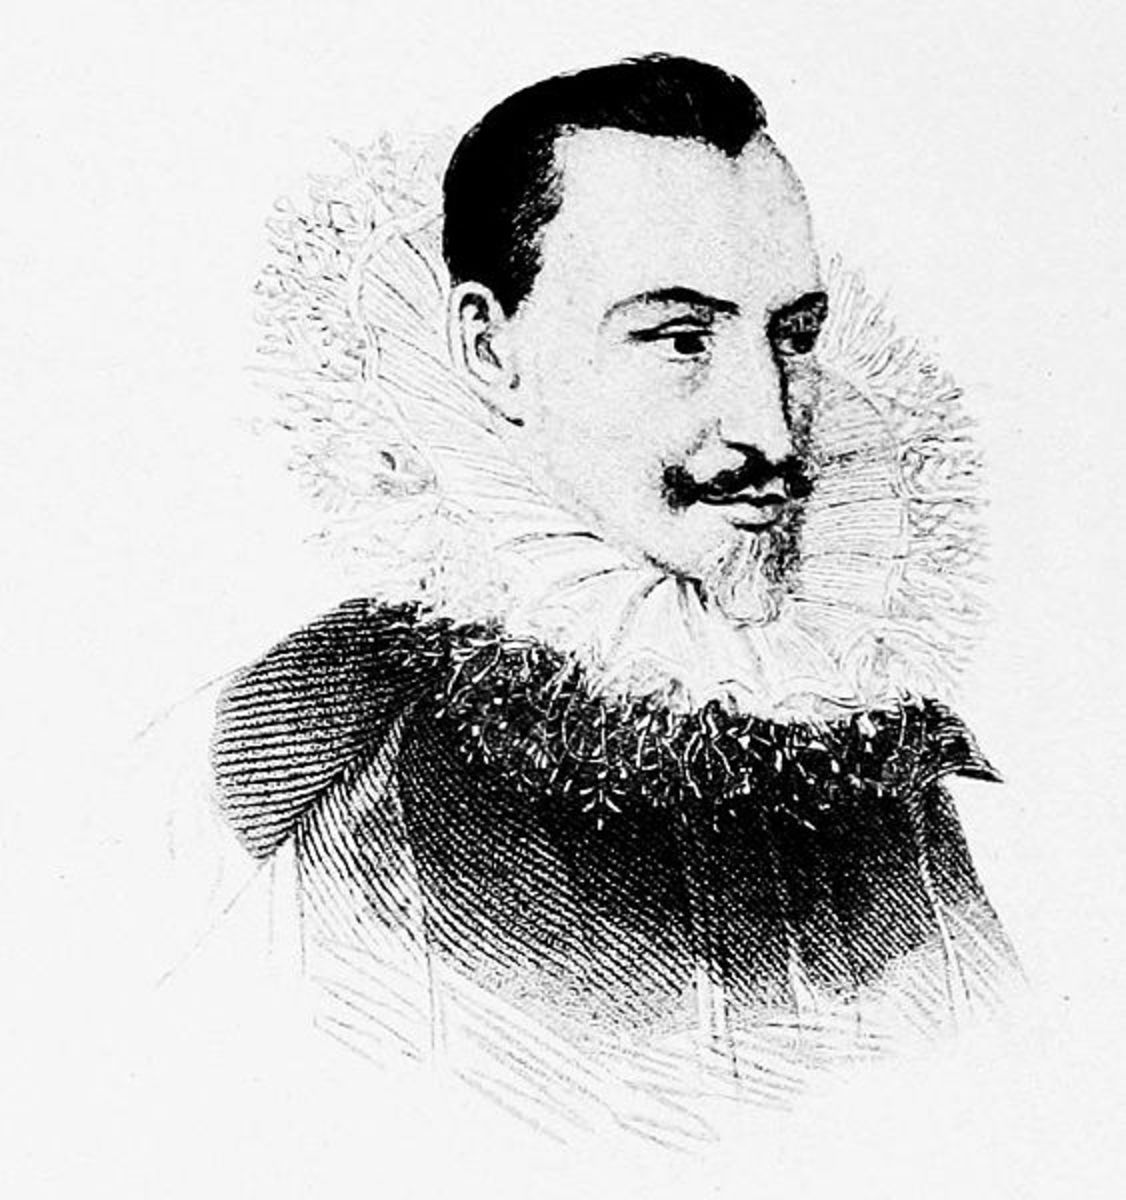 Edmund Spenser, author of Faerie Queen